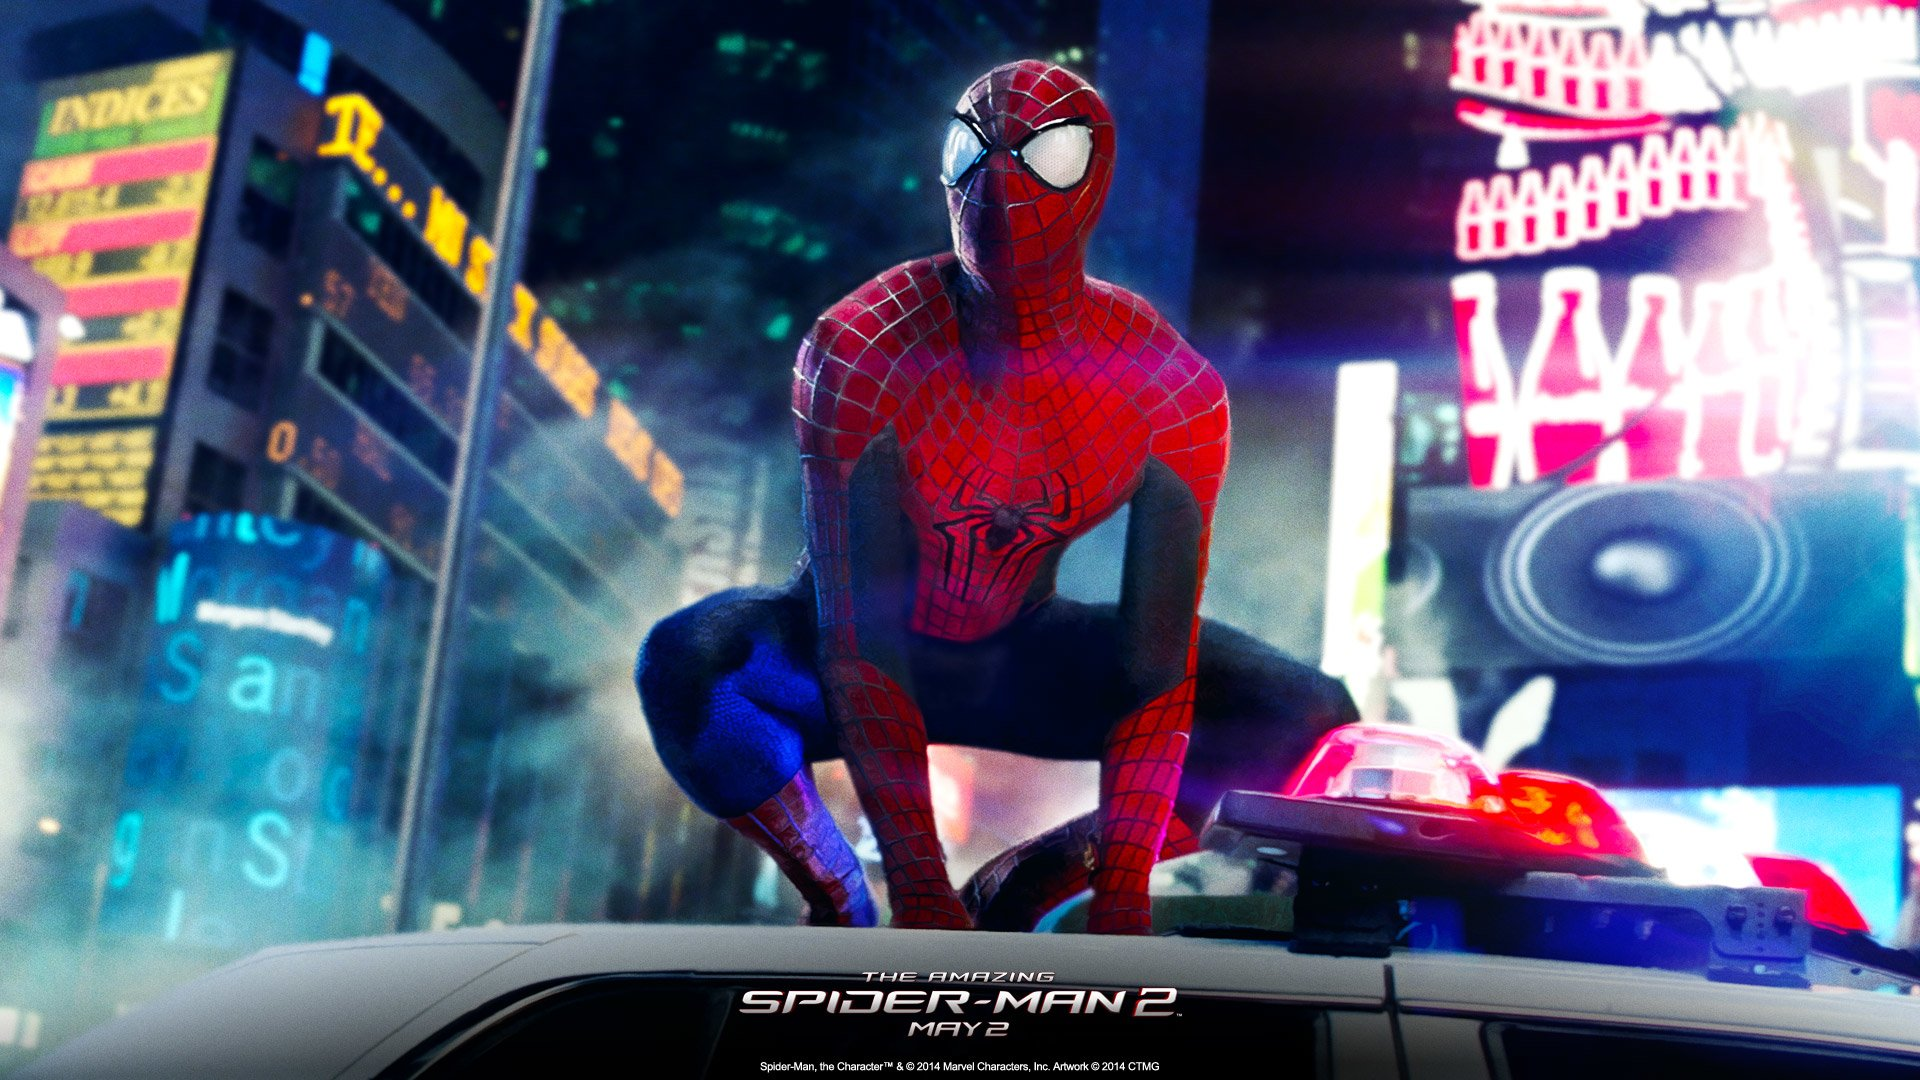 The Amazing Spider Man Wallpaper For Iphone The Amazing Spider Man 2 Full Hd Wallpaper And Background